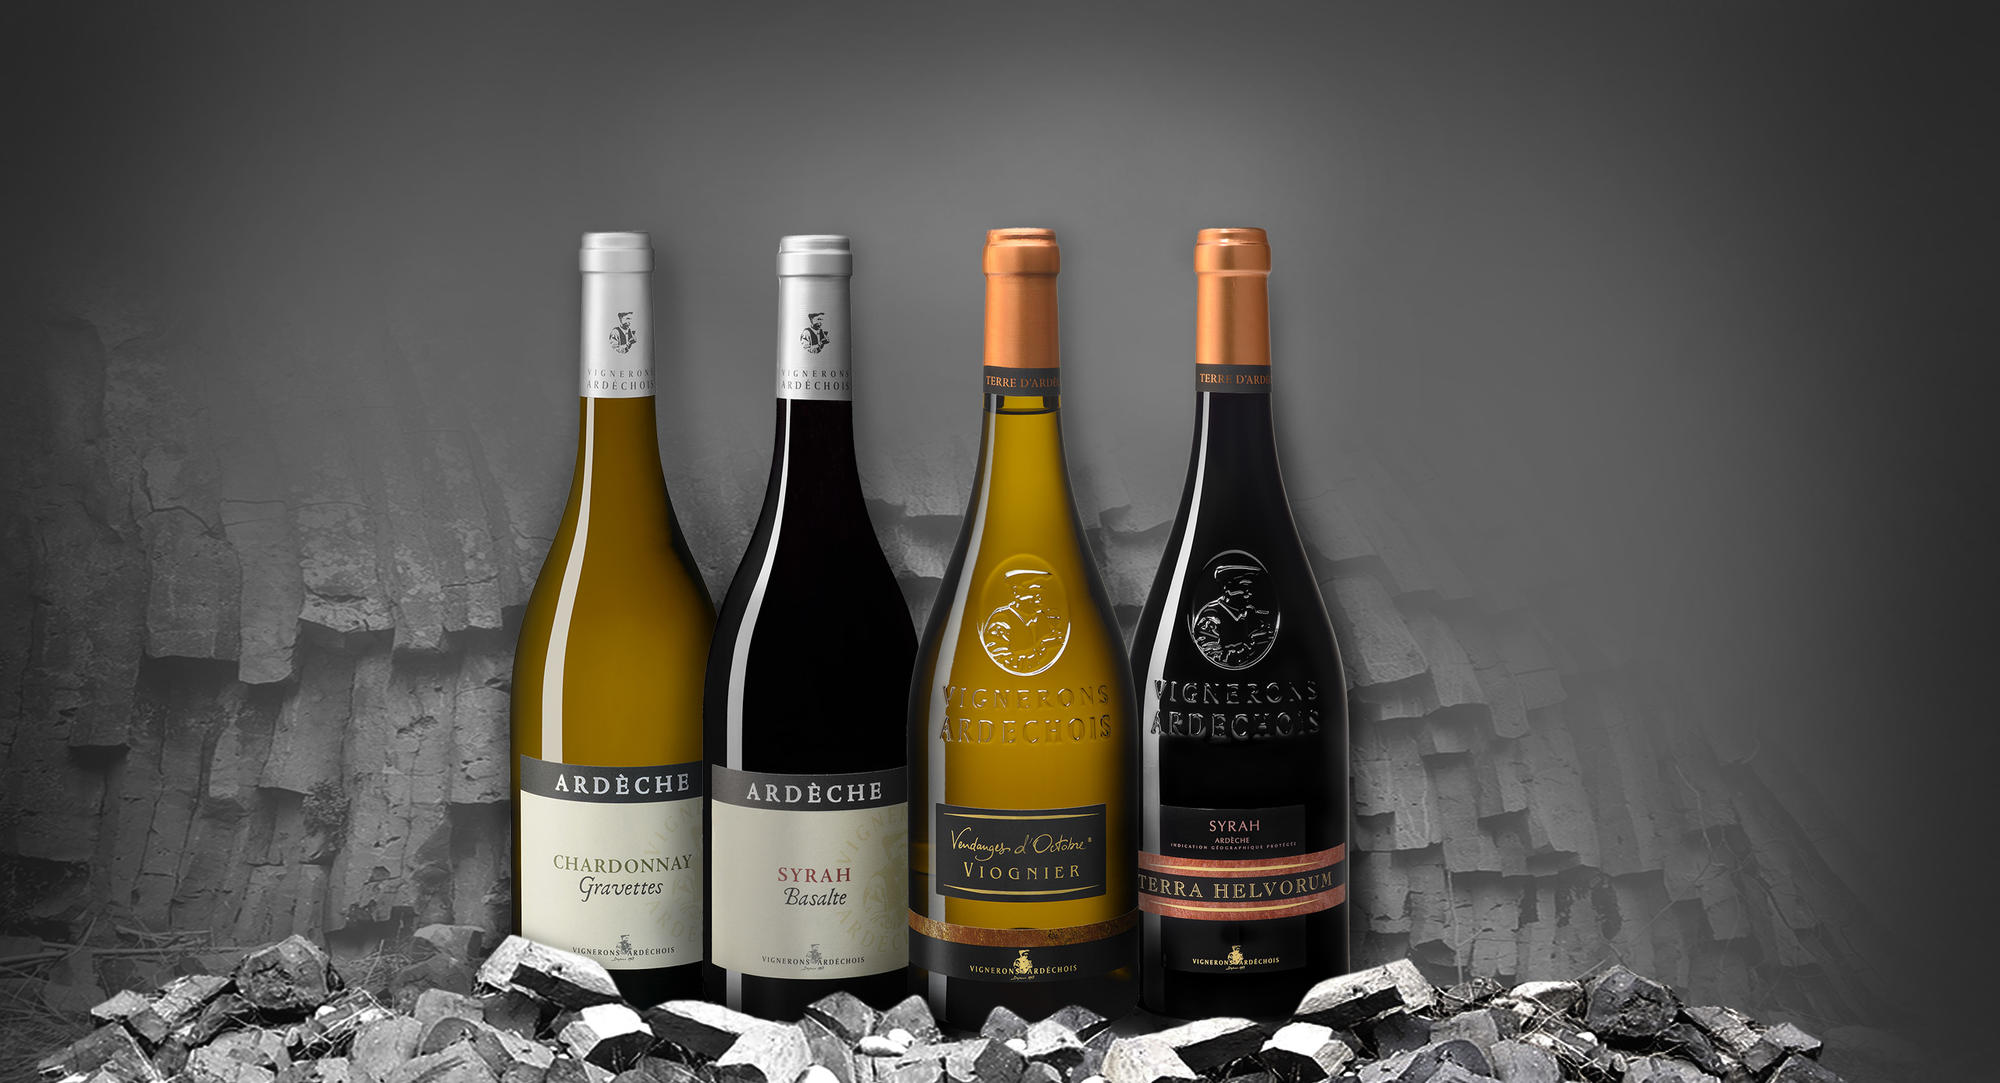 Discover our wines from this terroir